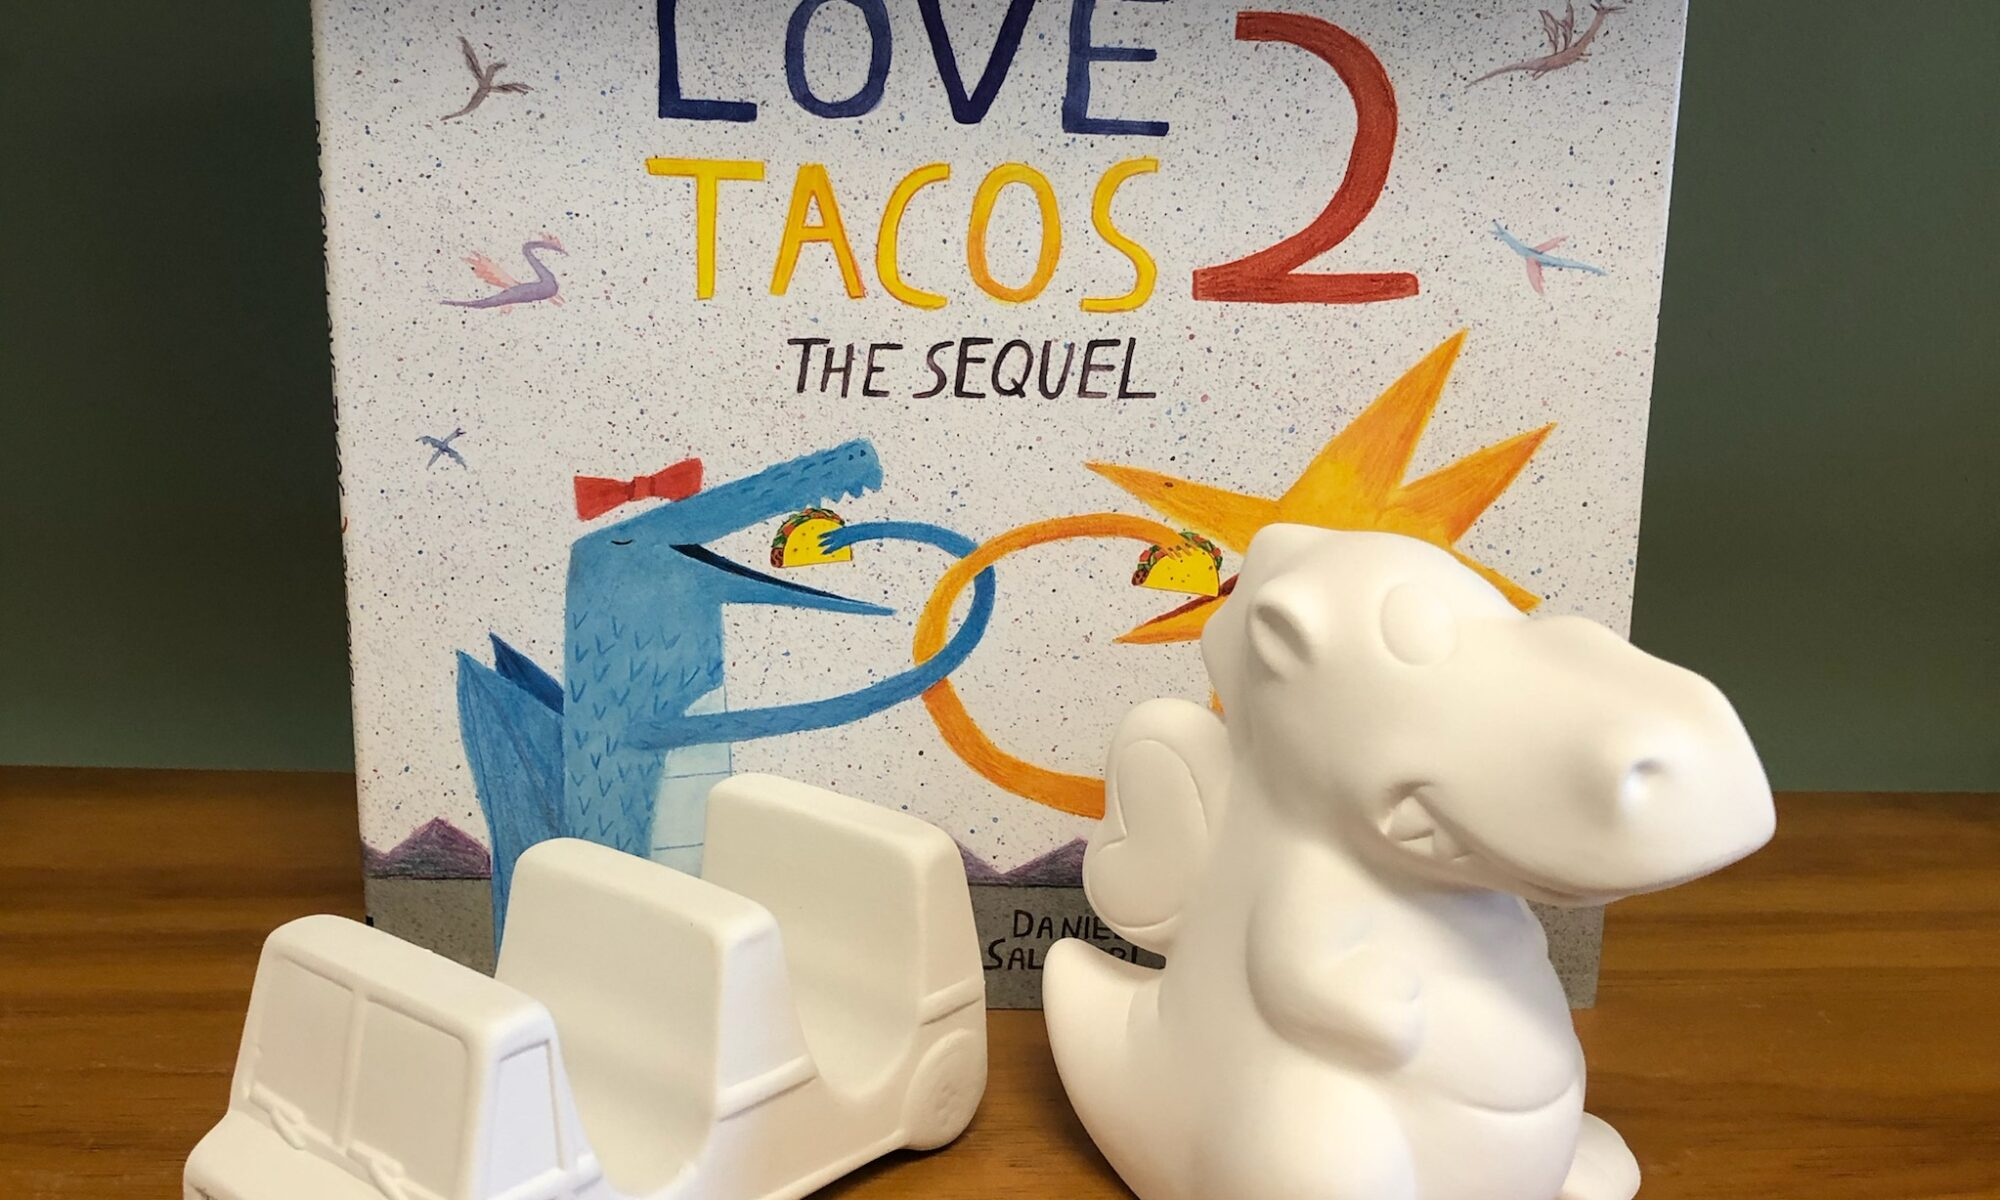 Dragons Love Tacos 2 - The Sequel